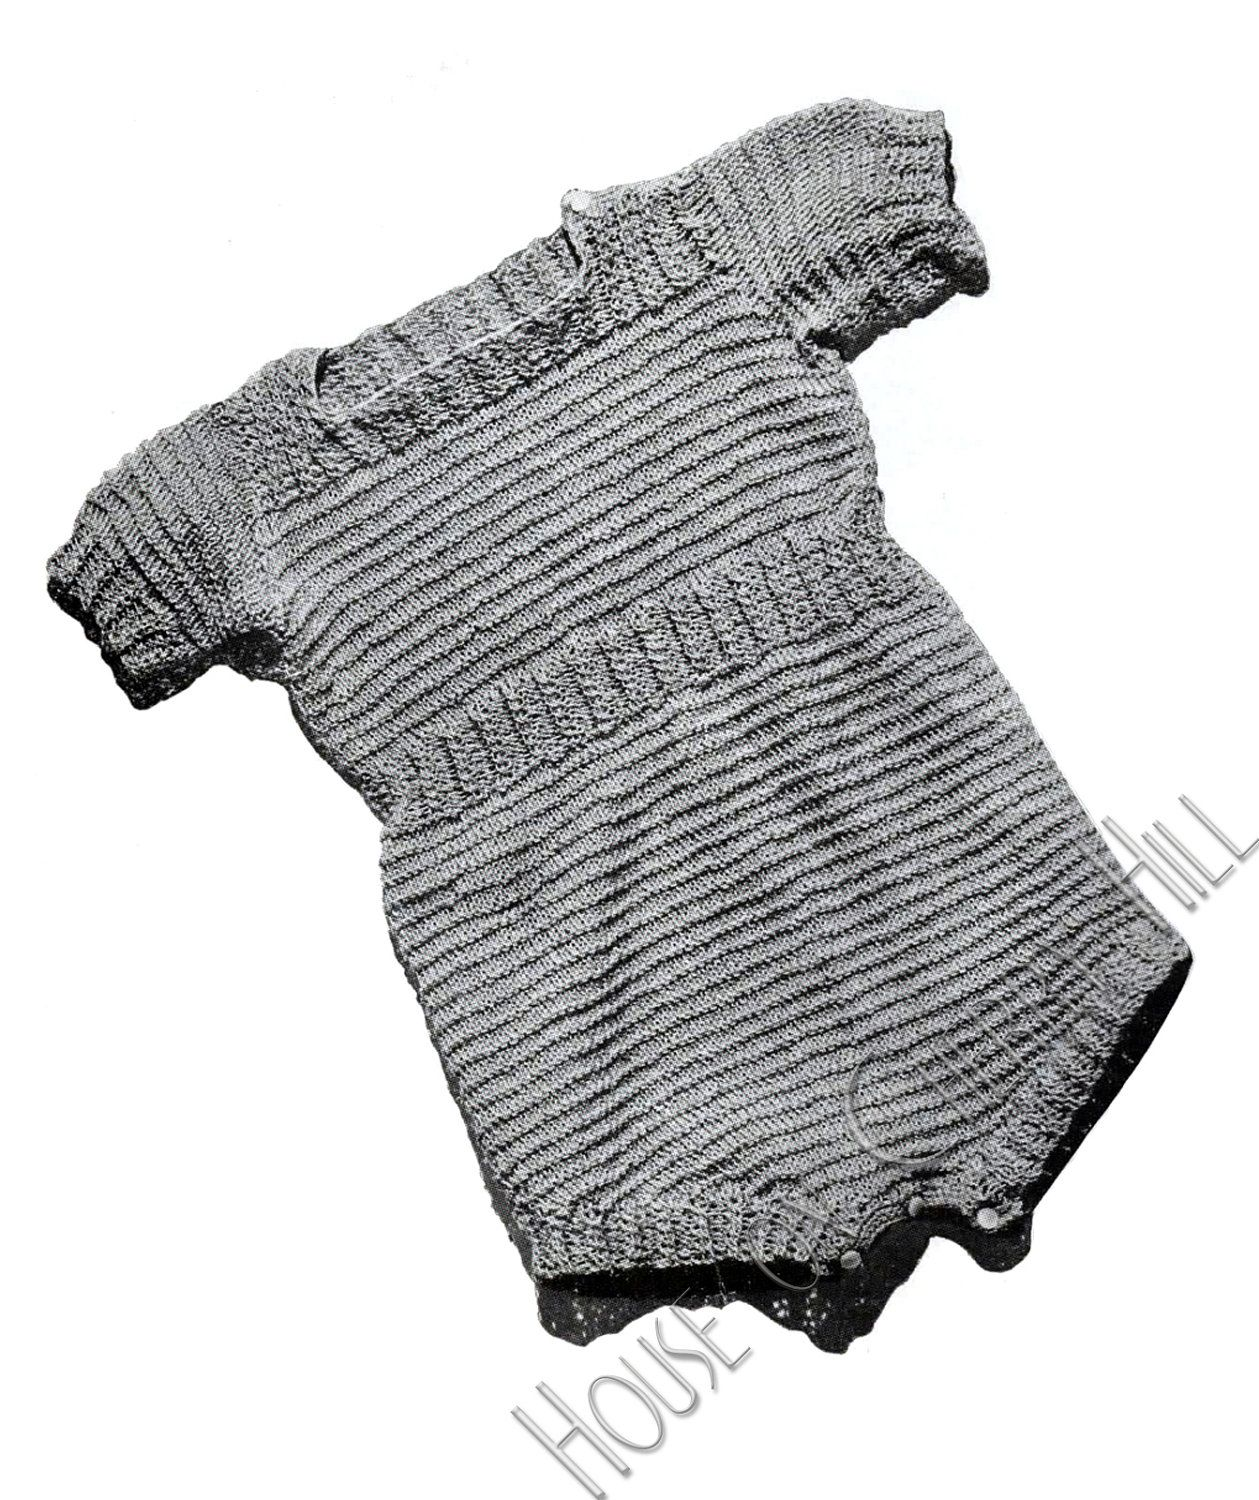 07c4278be461 Short Sleeve Romper Baby Outfit Knitting Pattern